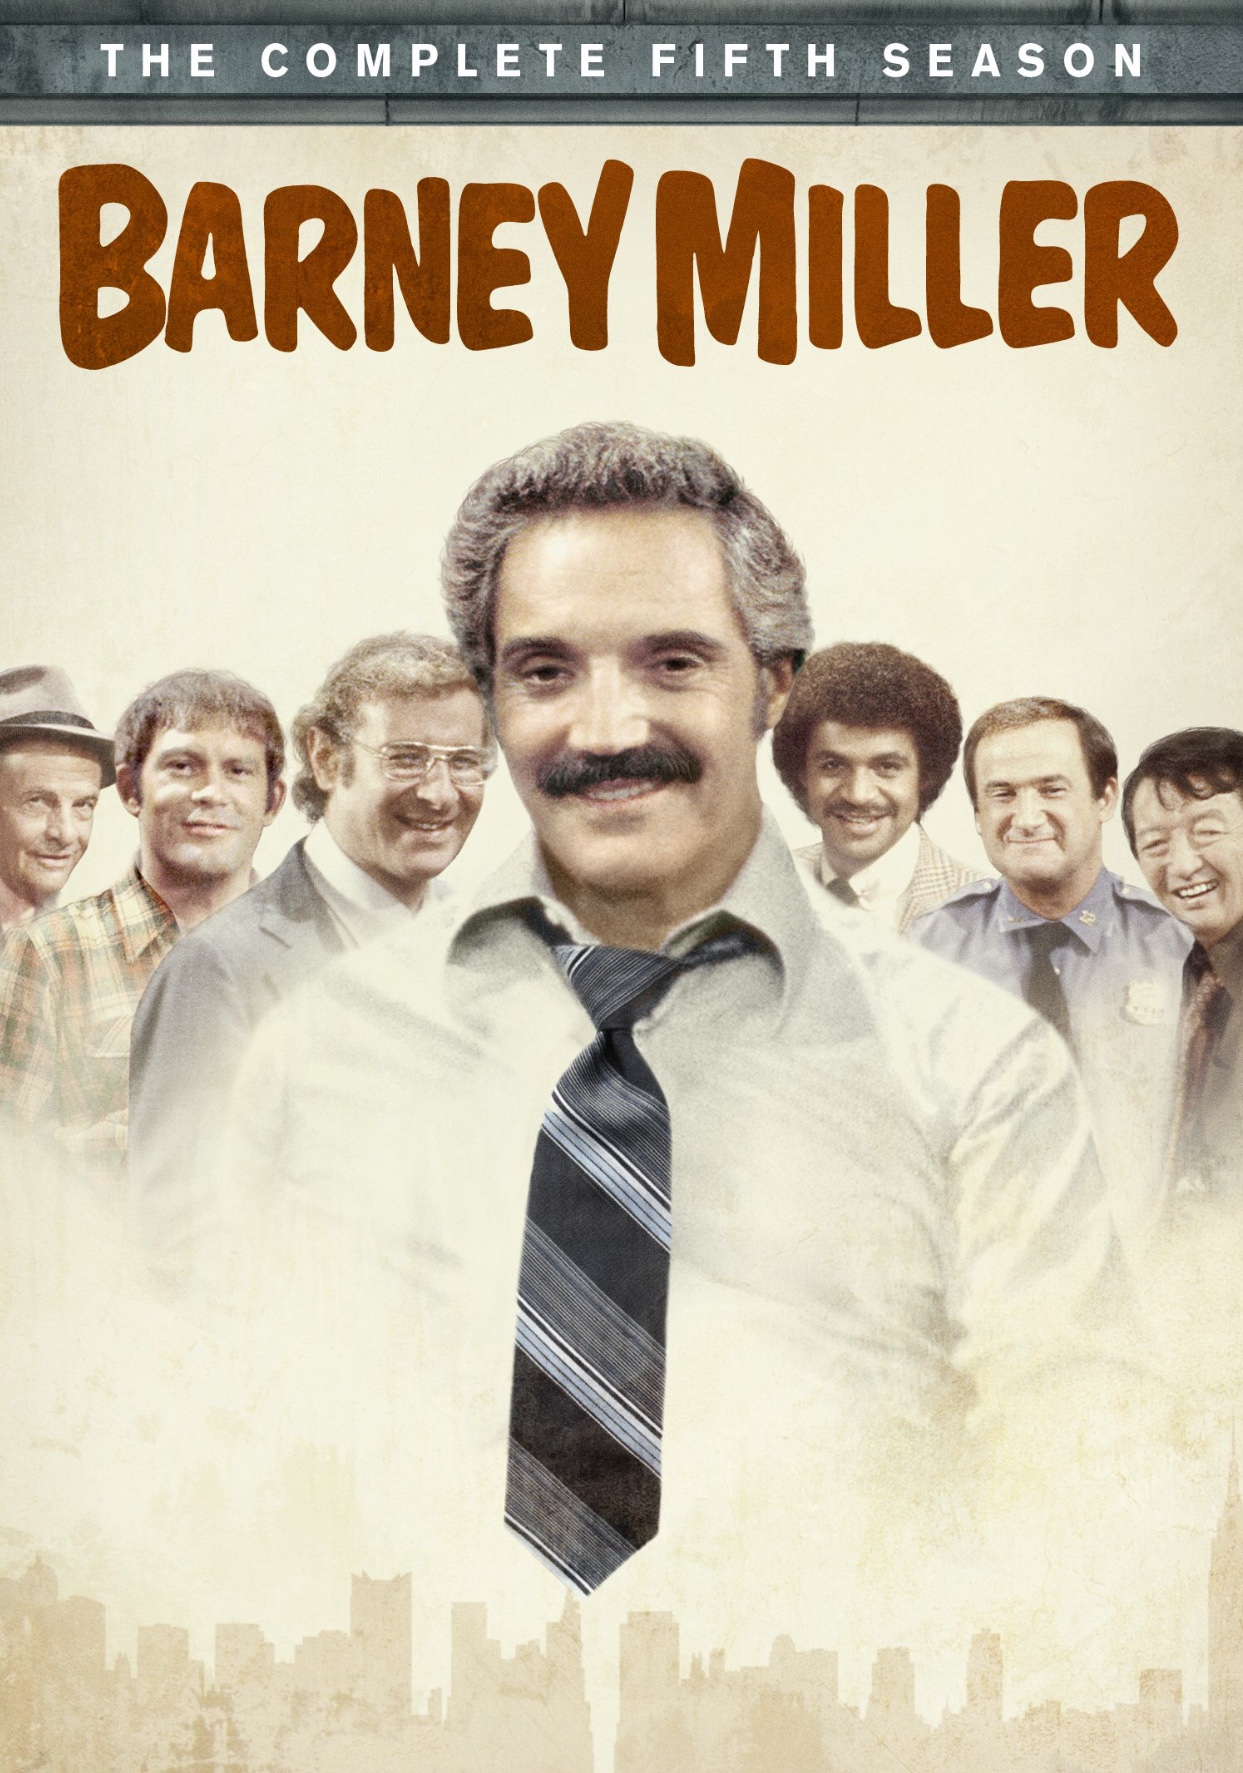 Barney Miller - Season 5 Episode 24